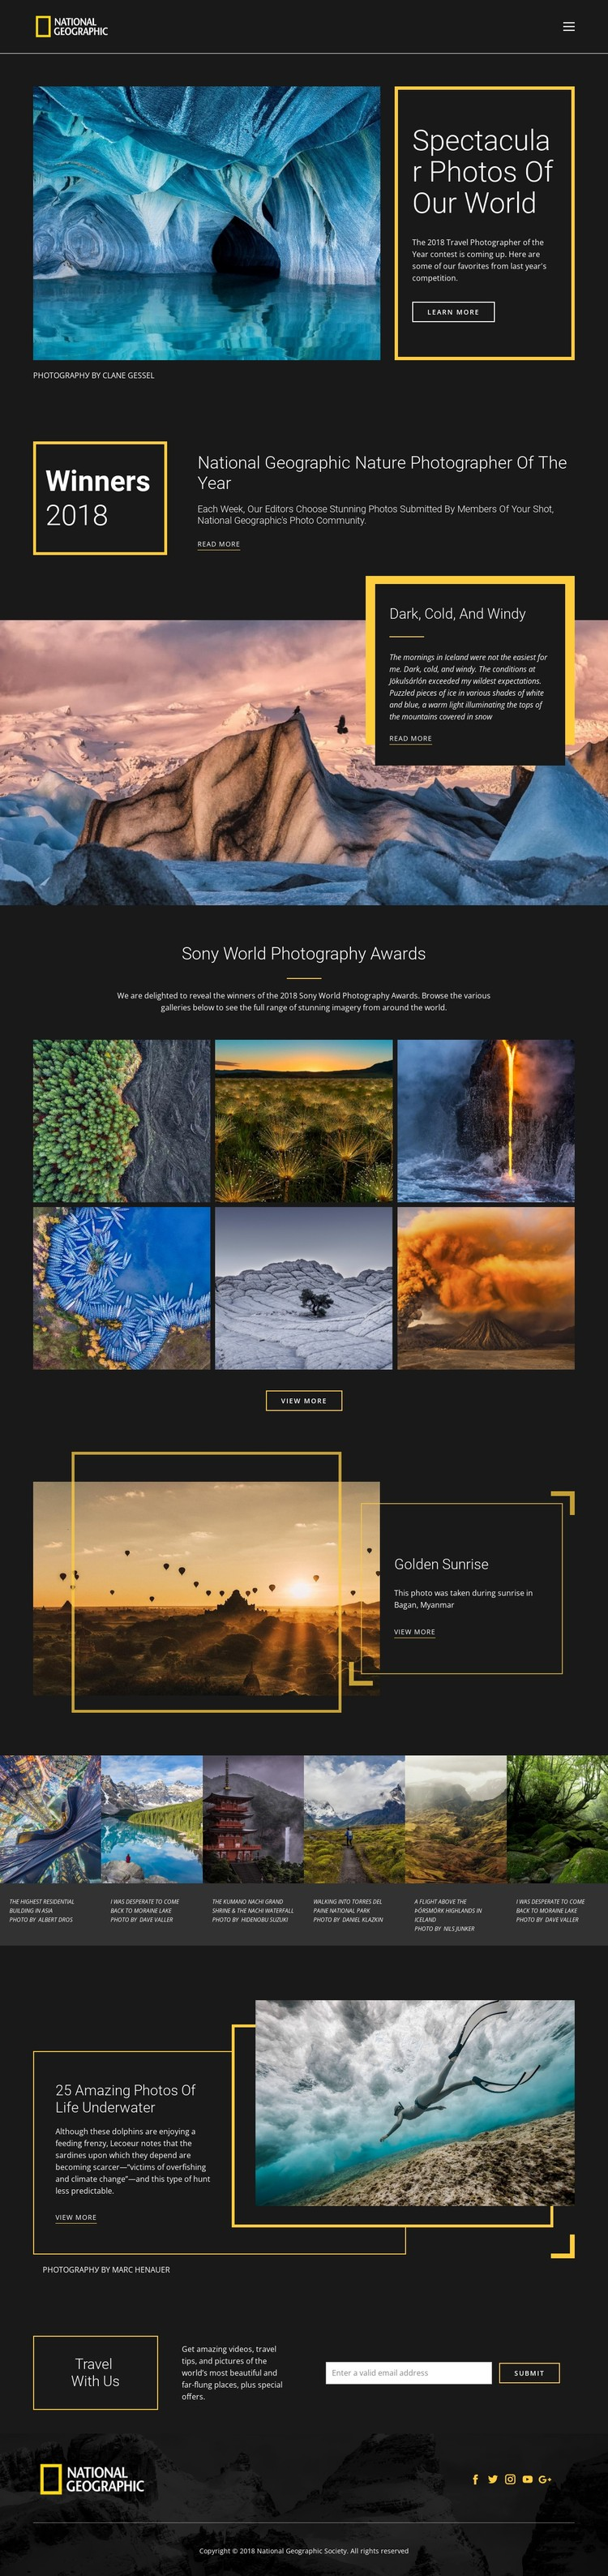 Pictures of nature Static Site Generator